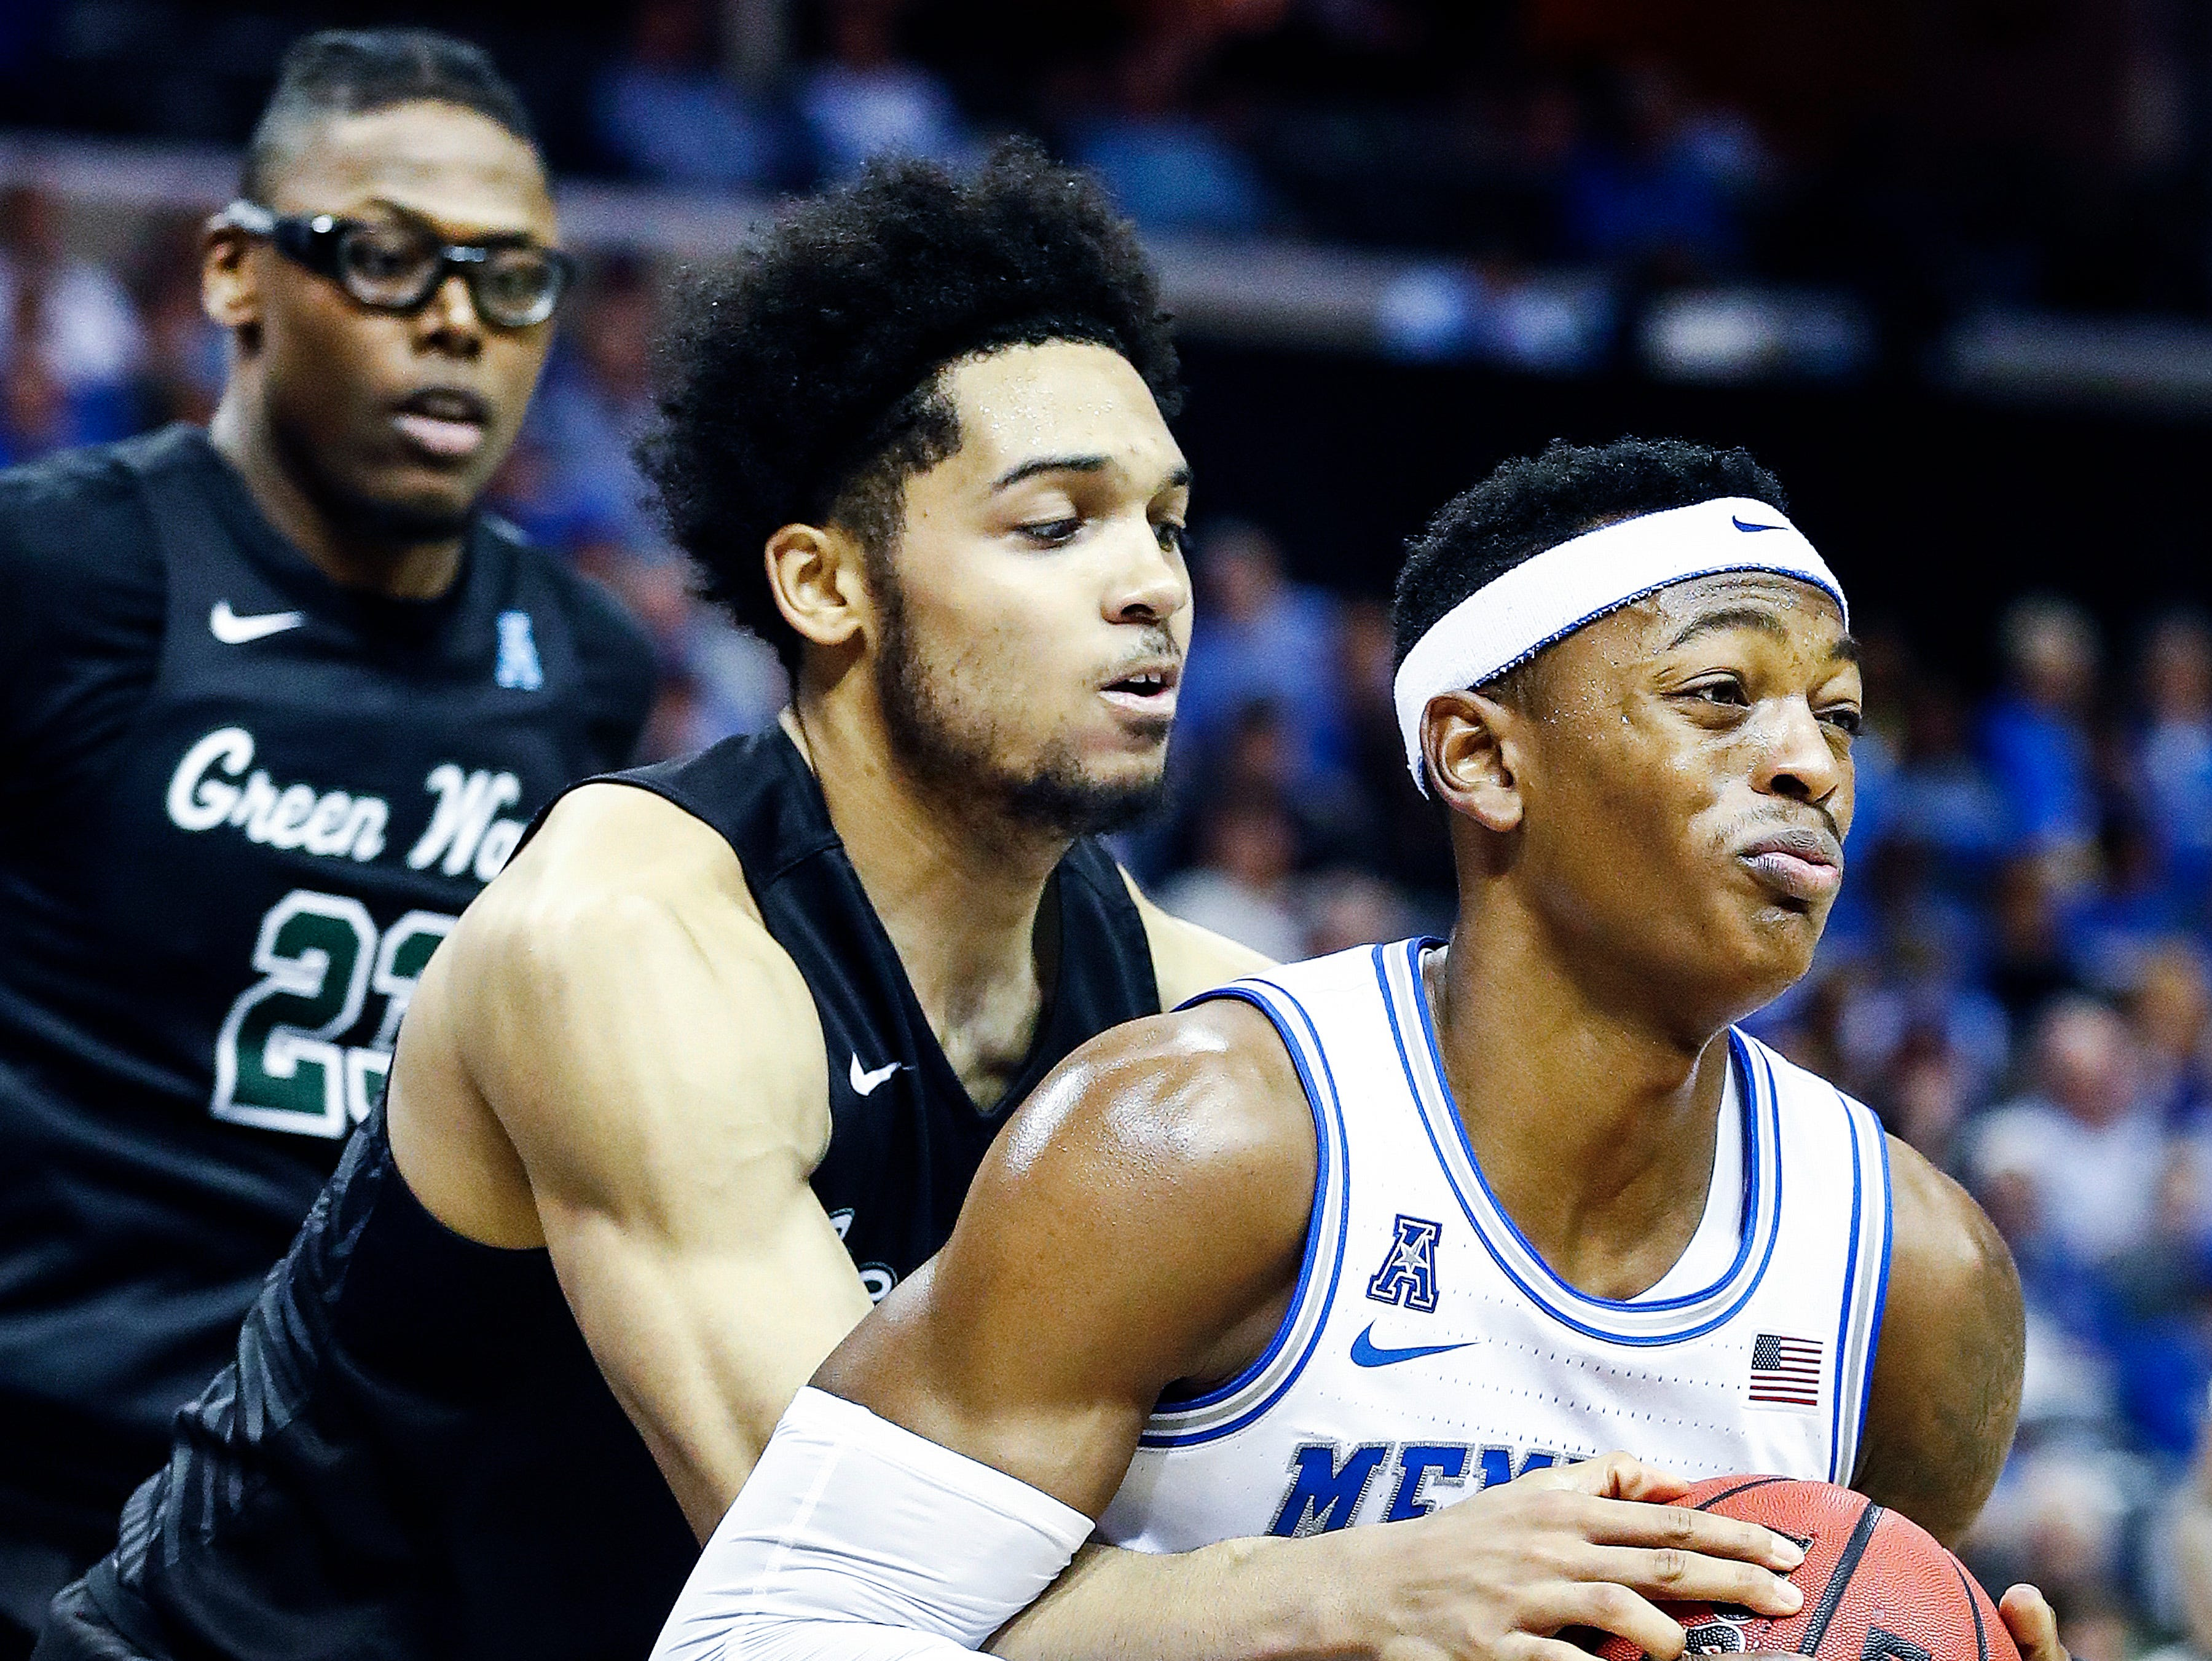 Memphis forward Kyvon Davenport (right) is fouled by Tulane defender Caleb Daniels (left) during action of their first round AAC Tournament game at the  FedExForum, Thursday, March 14, 2019.